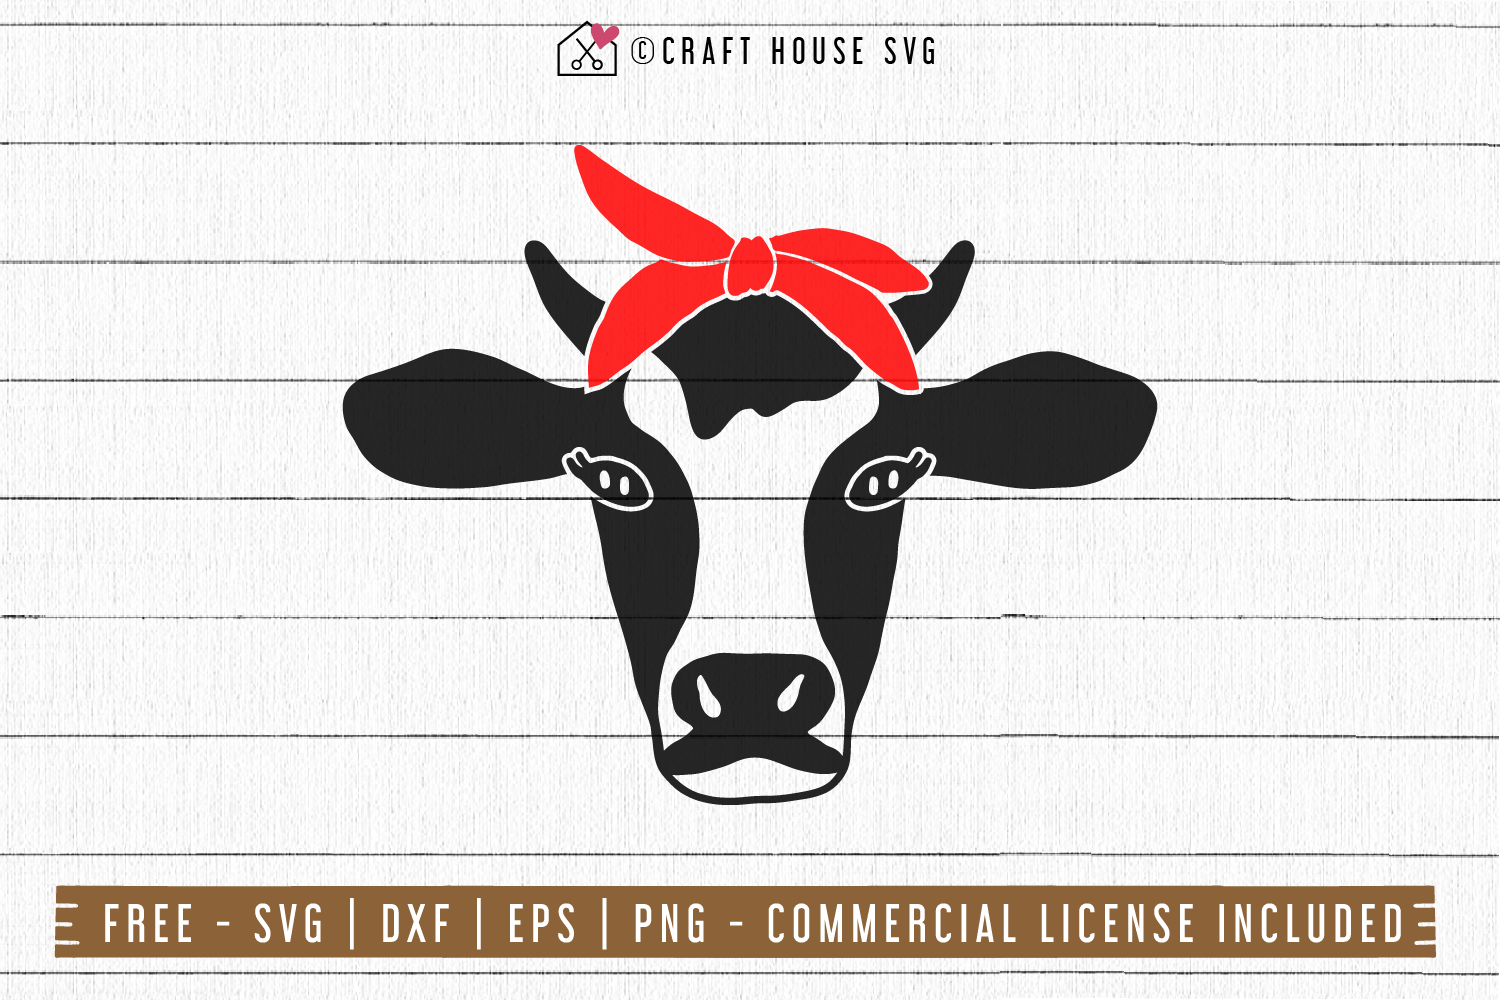 Download FREE Cow SVG - Cow bandana SVG - Craft House SVG